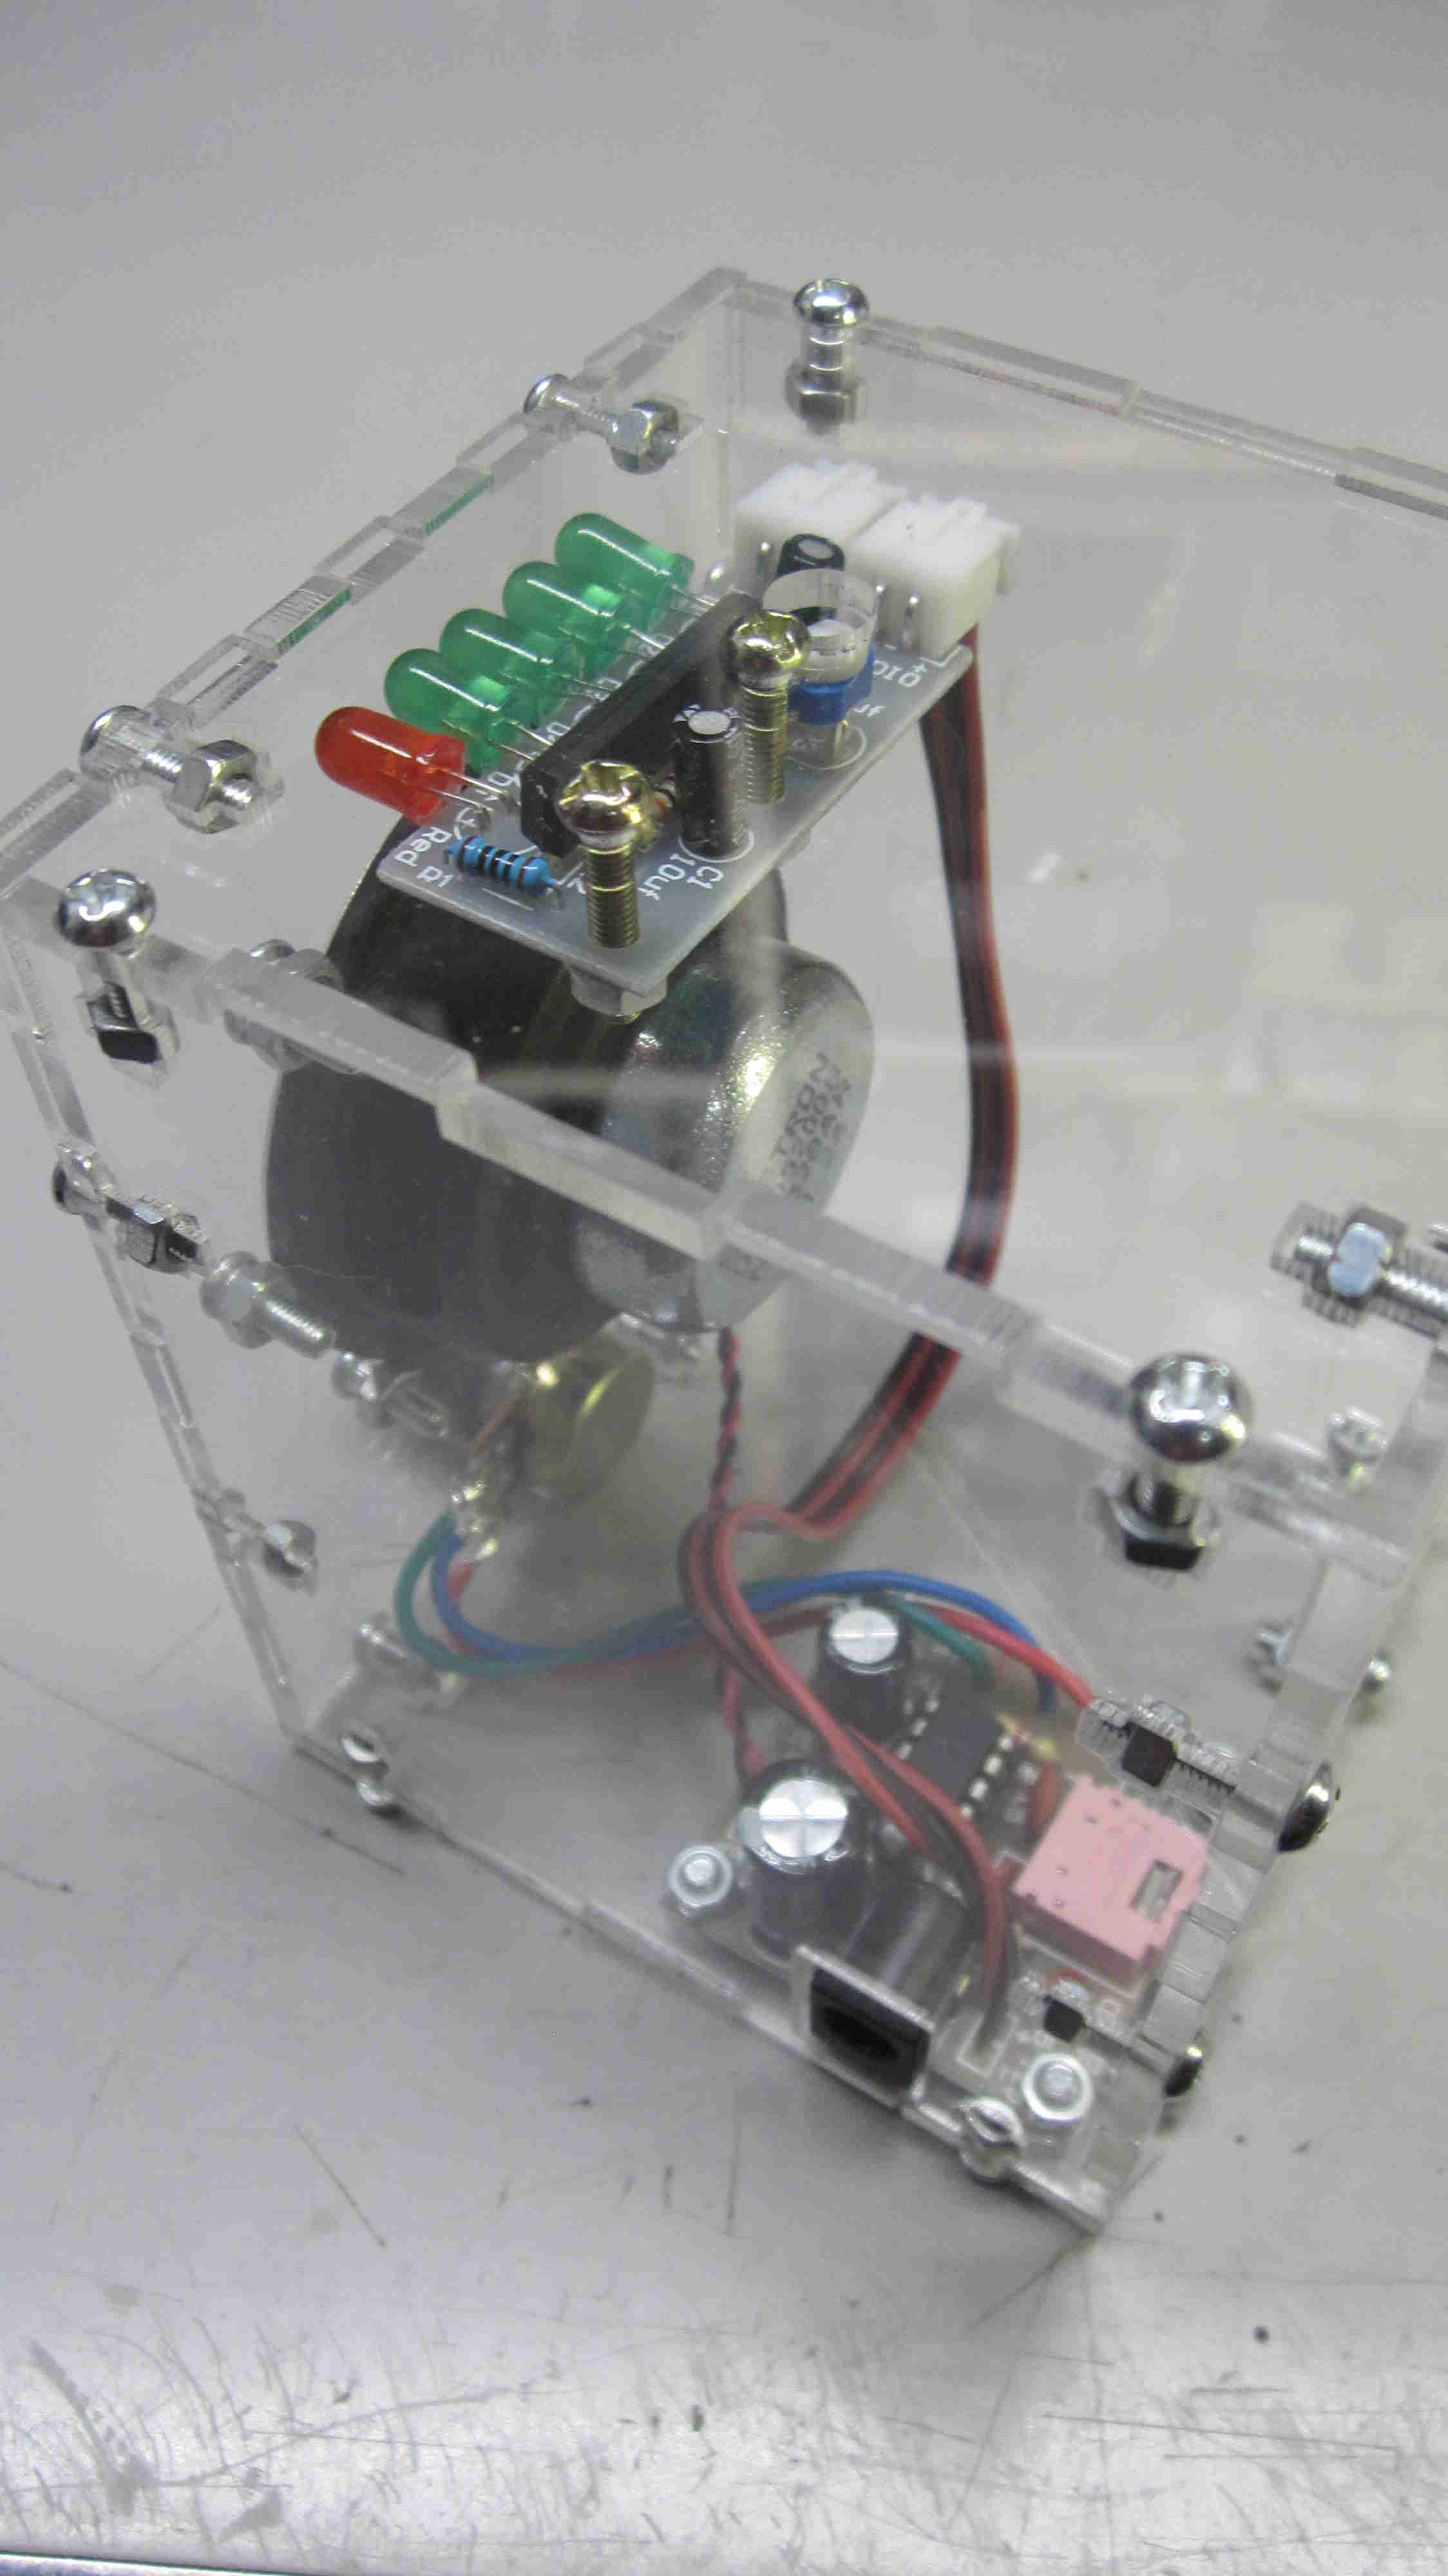 Audio Amplifier Kit 3rd Planet Solar Kc9on Using An Lm386 Ka2284 Level Indicator And Speaker All Wrapped In A Nice Clear Enclosure Includes Builders Notes For Both Boards